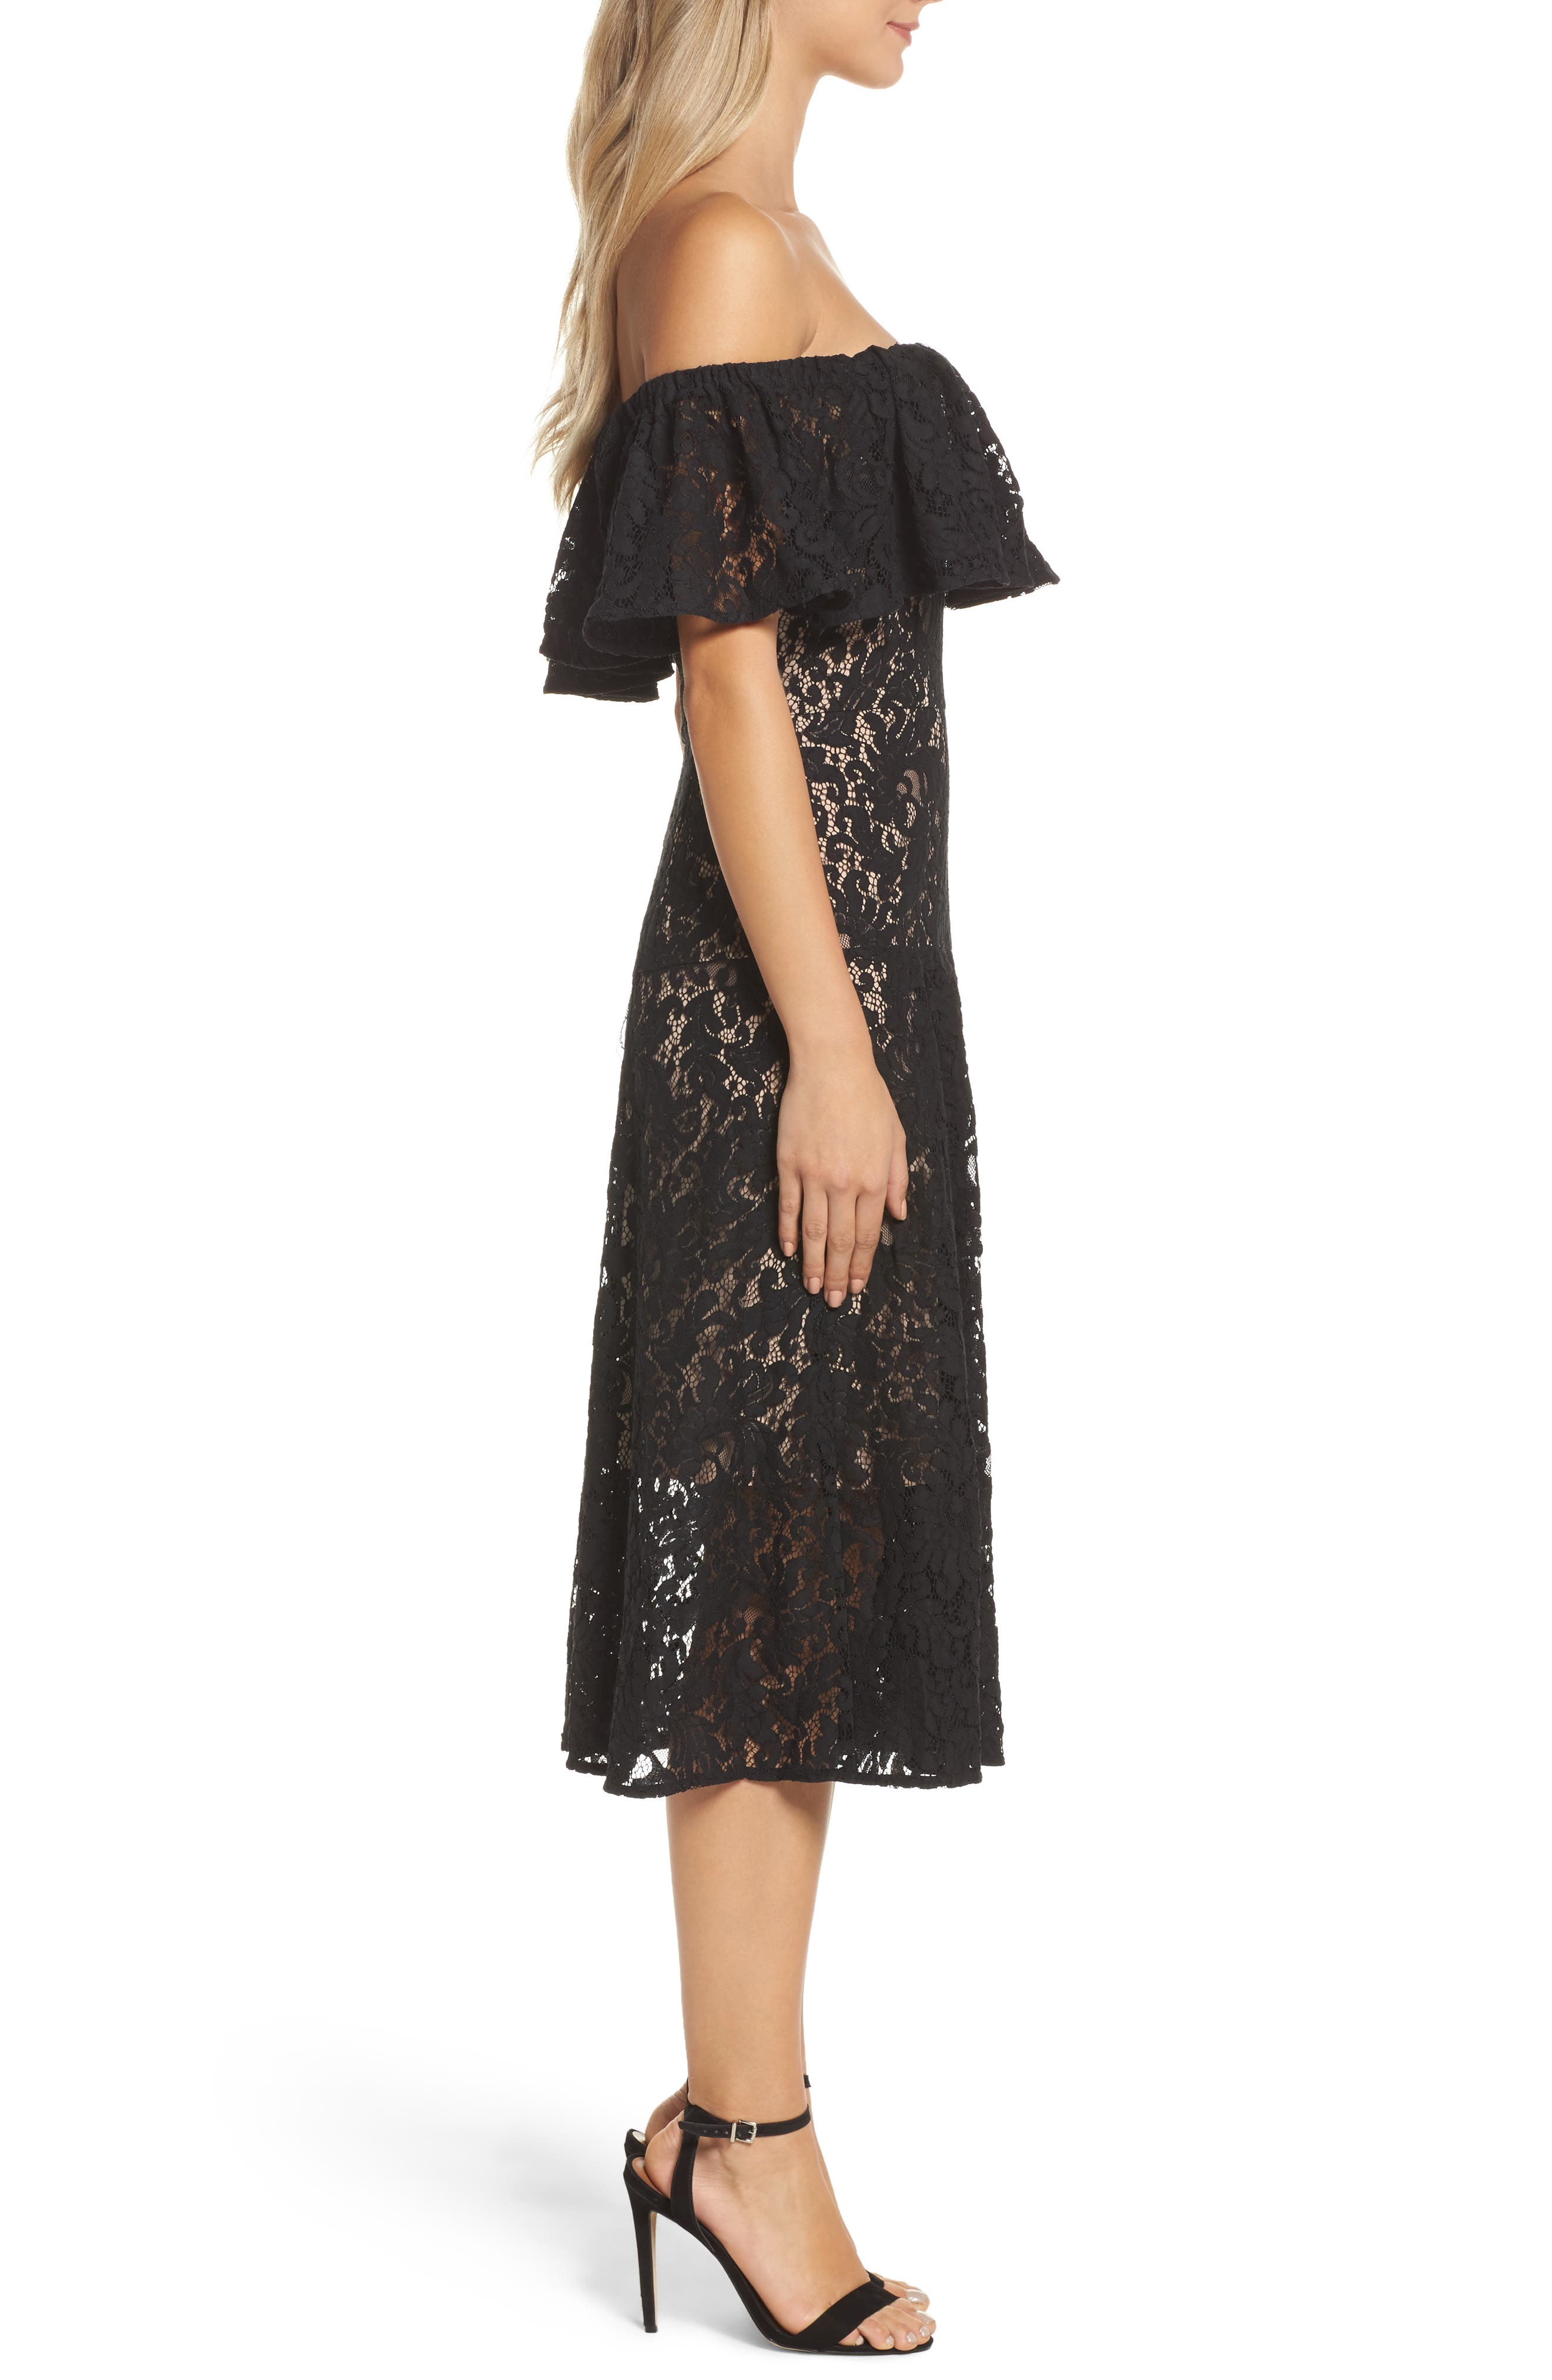 Sunday Silence Lace Off the Shoulder Dress,                             Alternate thumbnail 3, color,                             Black